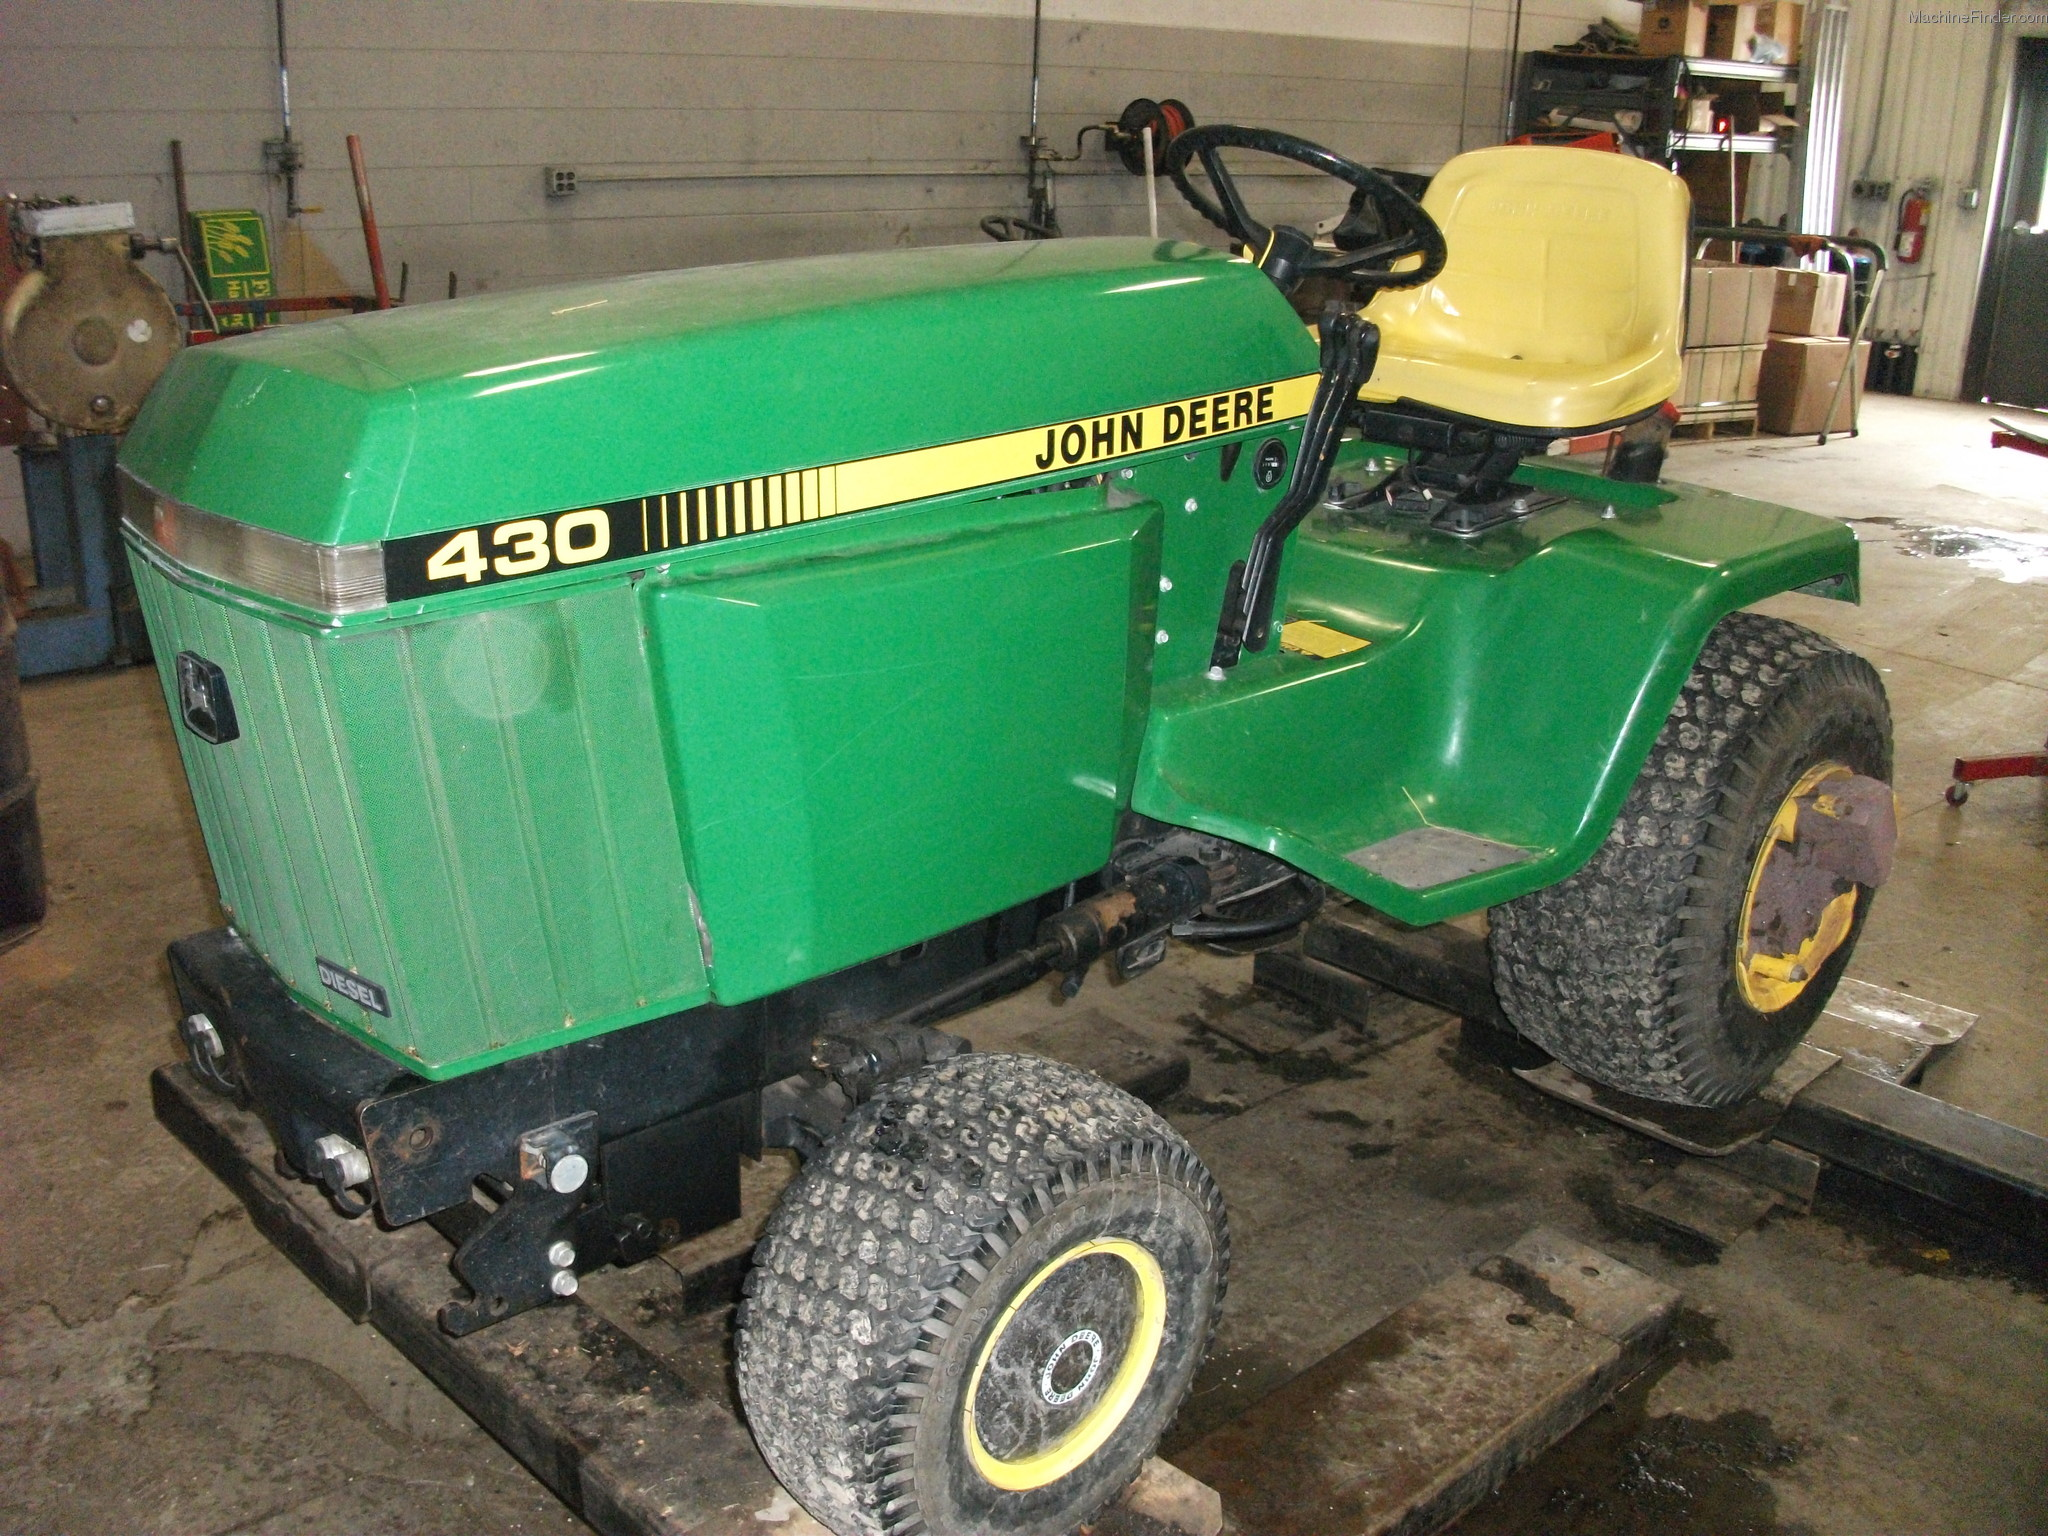 Gravely 450 Wiring Diagram Diagrams Image Free Tractor Model 430 Vtwctrrhvtwctrorg At